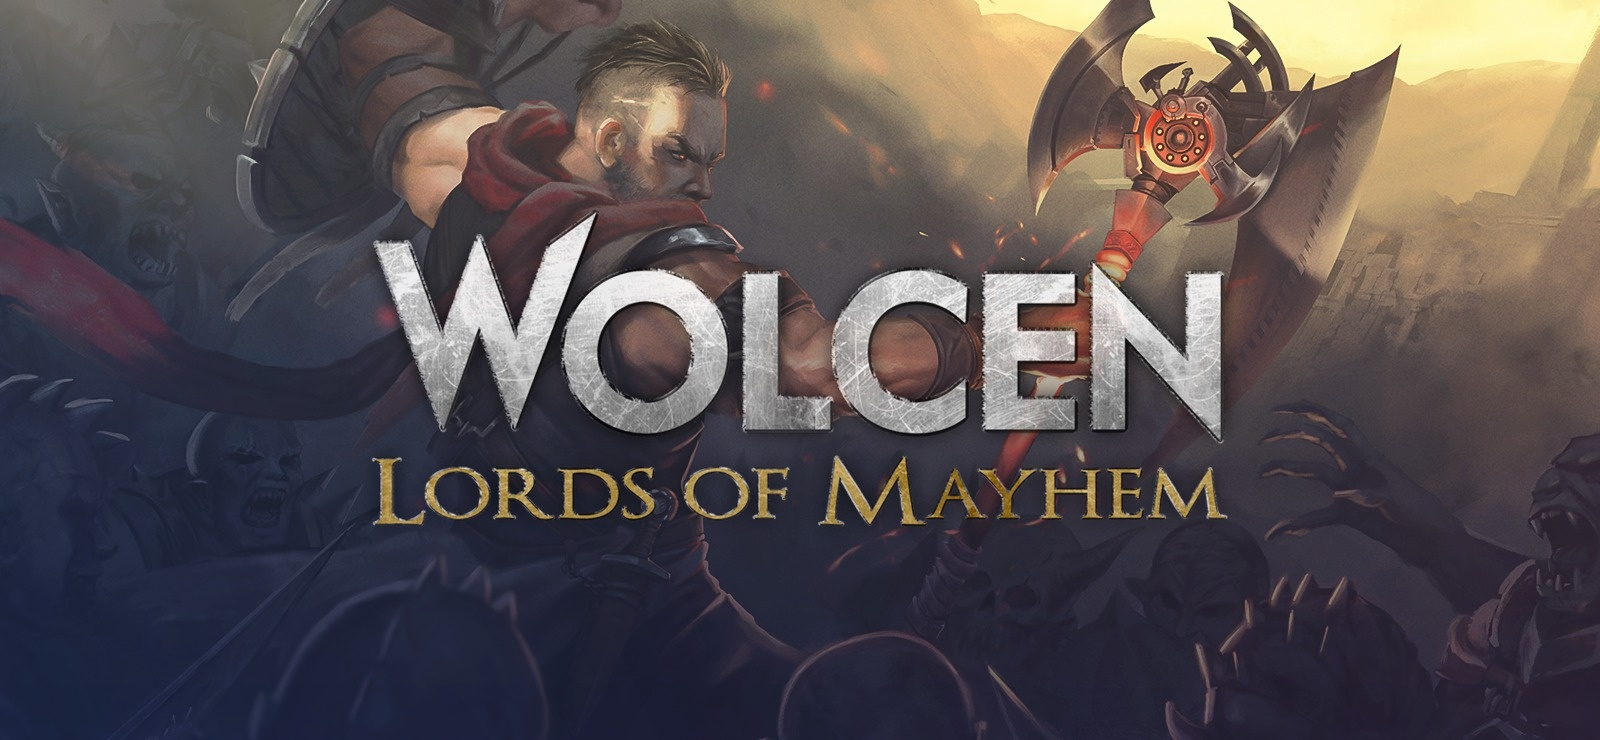 Game nhập vai Wolcen: Lords of Mayhem ra mắt trailer mãn nhãn